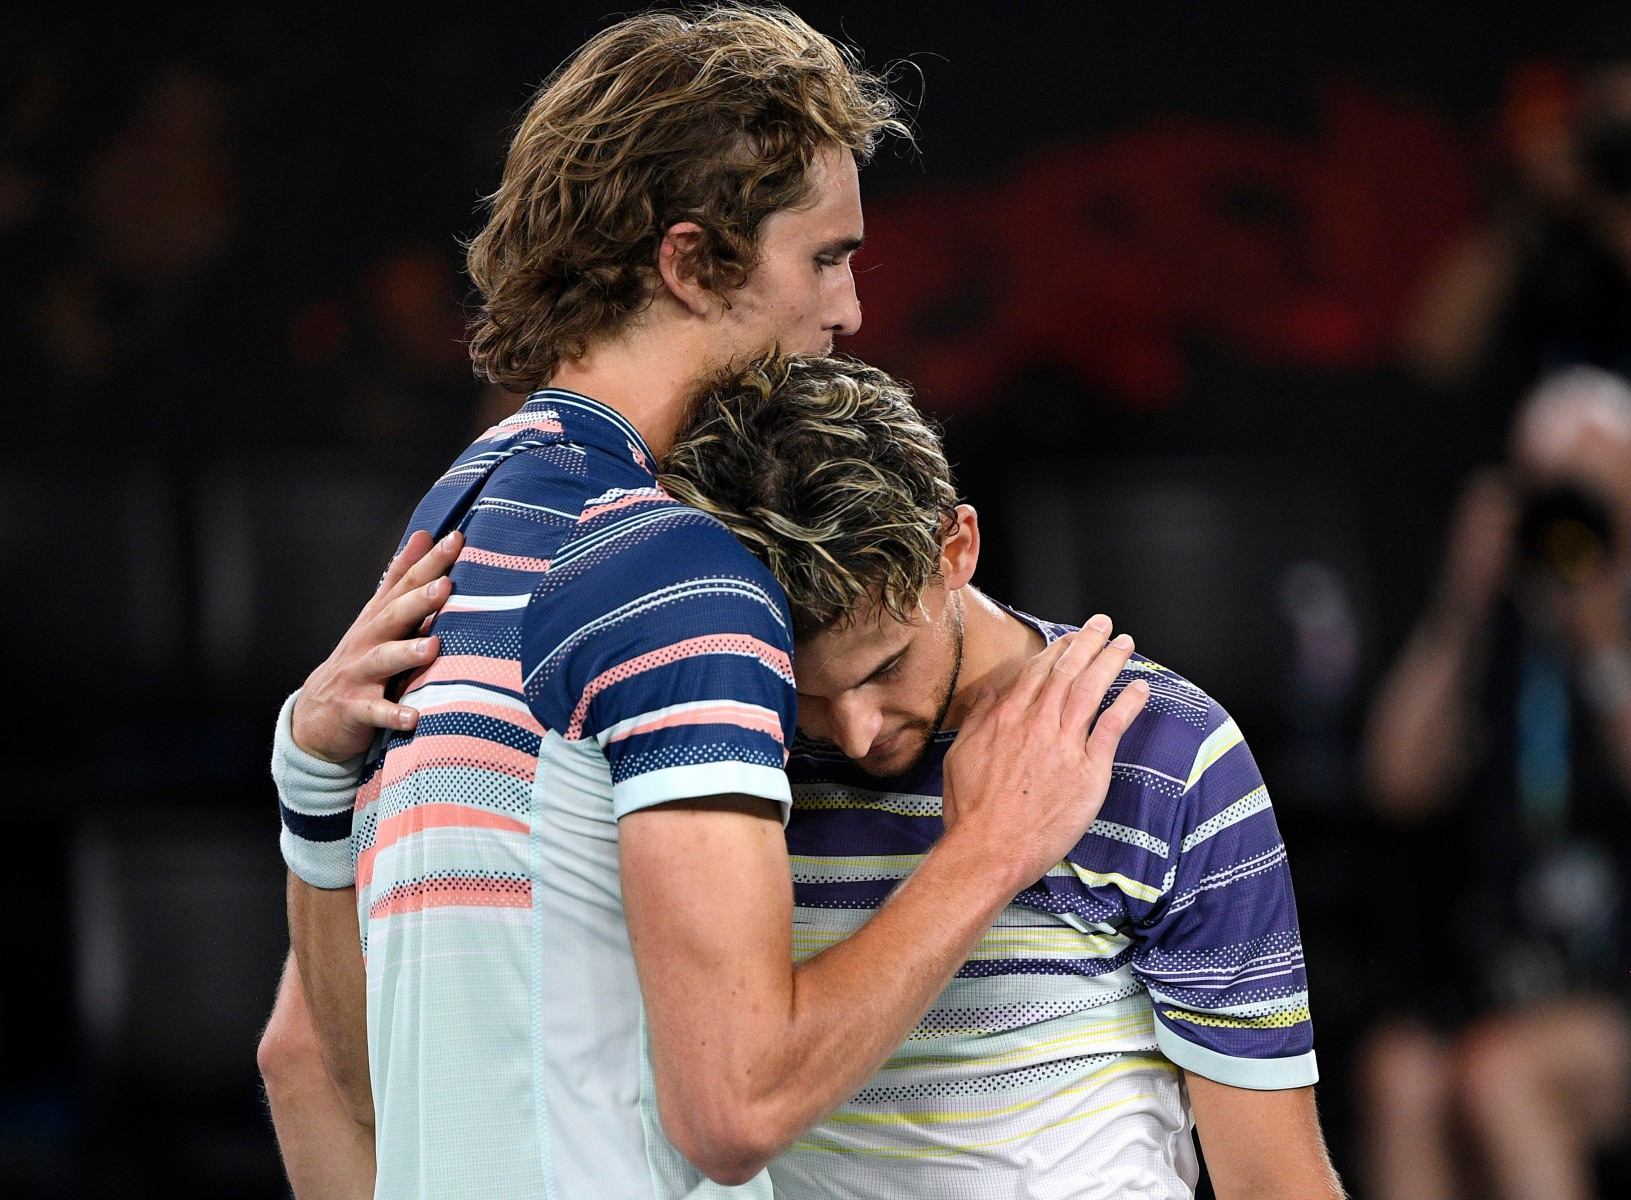 Good friends Thiem and Zverev embrace at the net following the end of the match